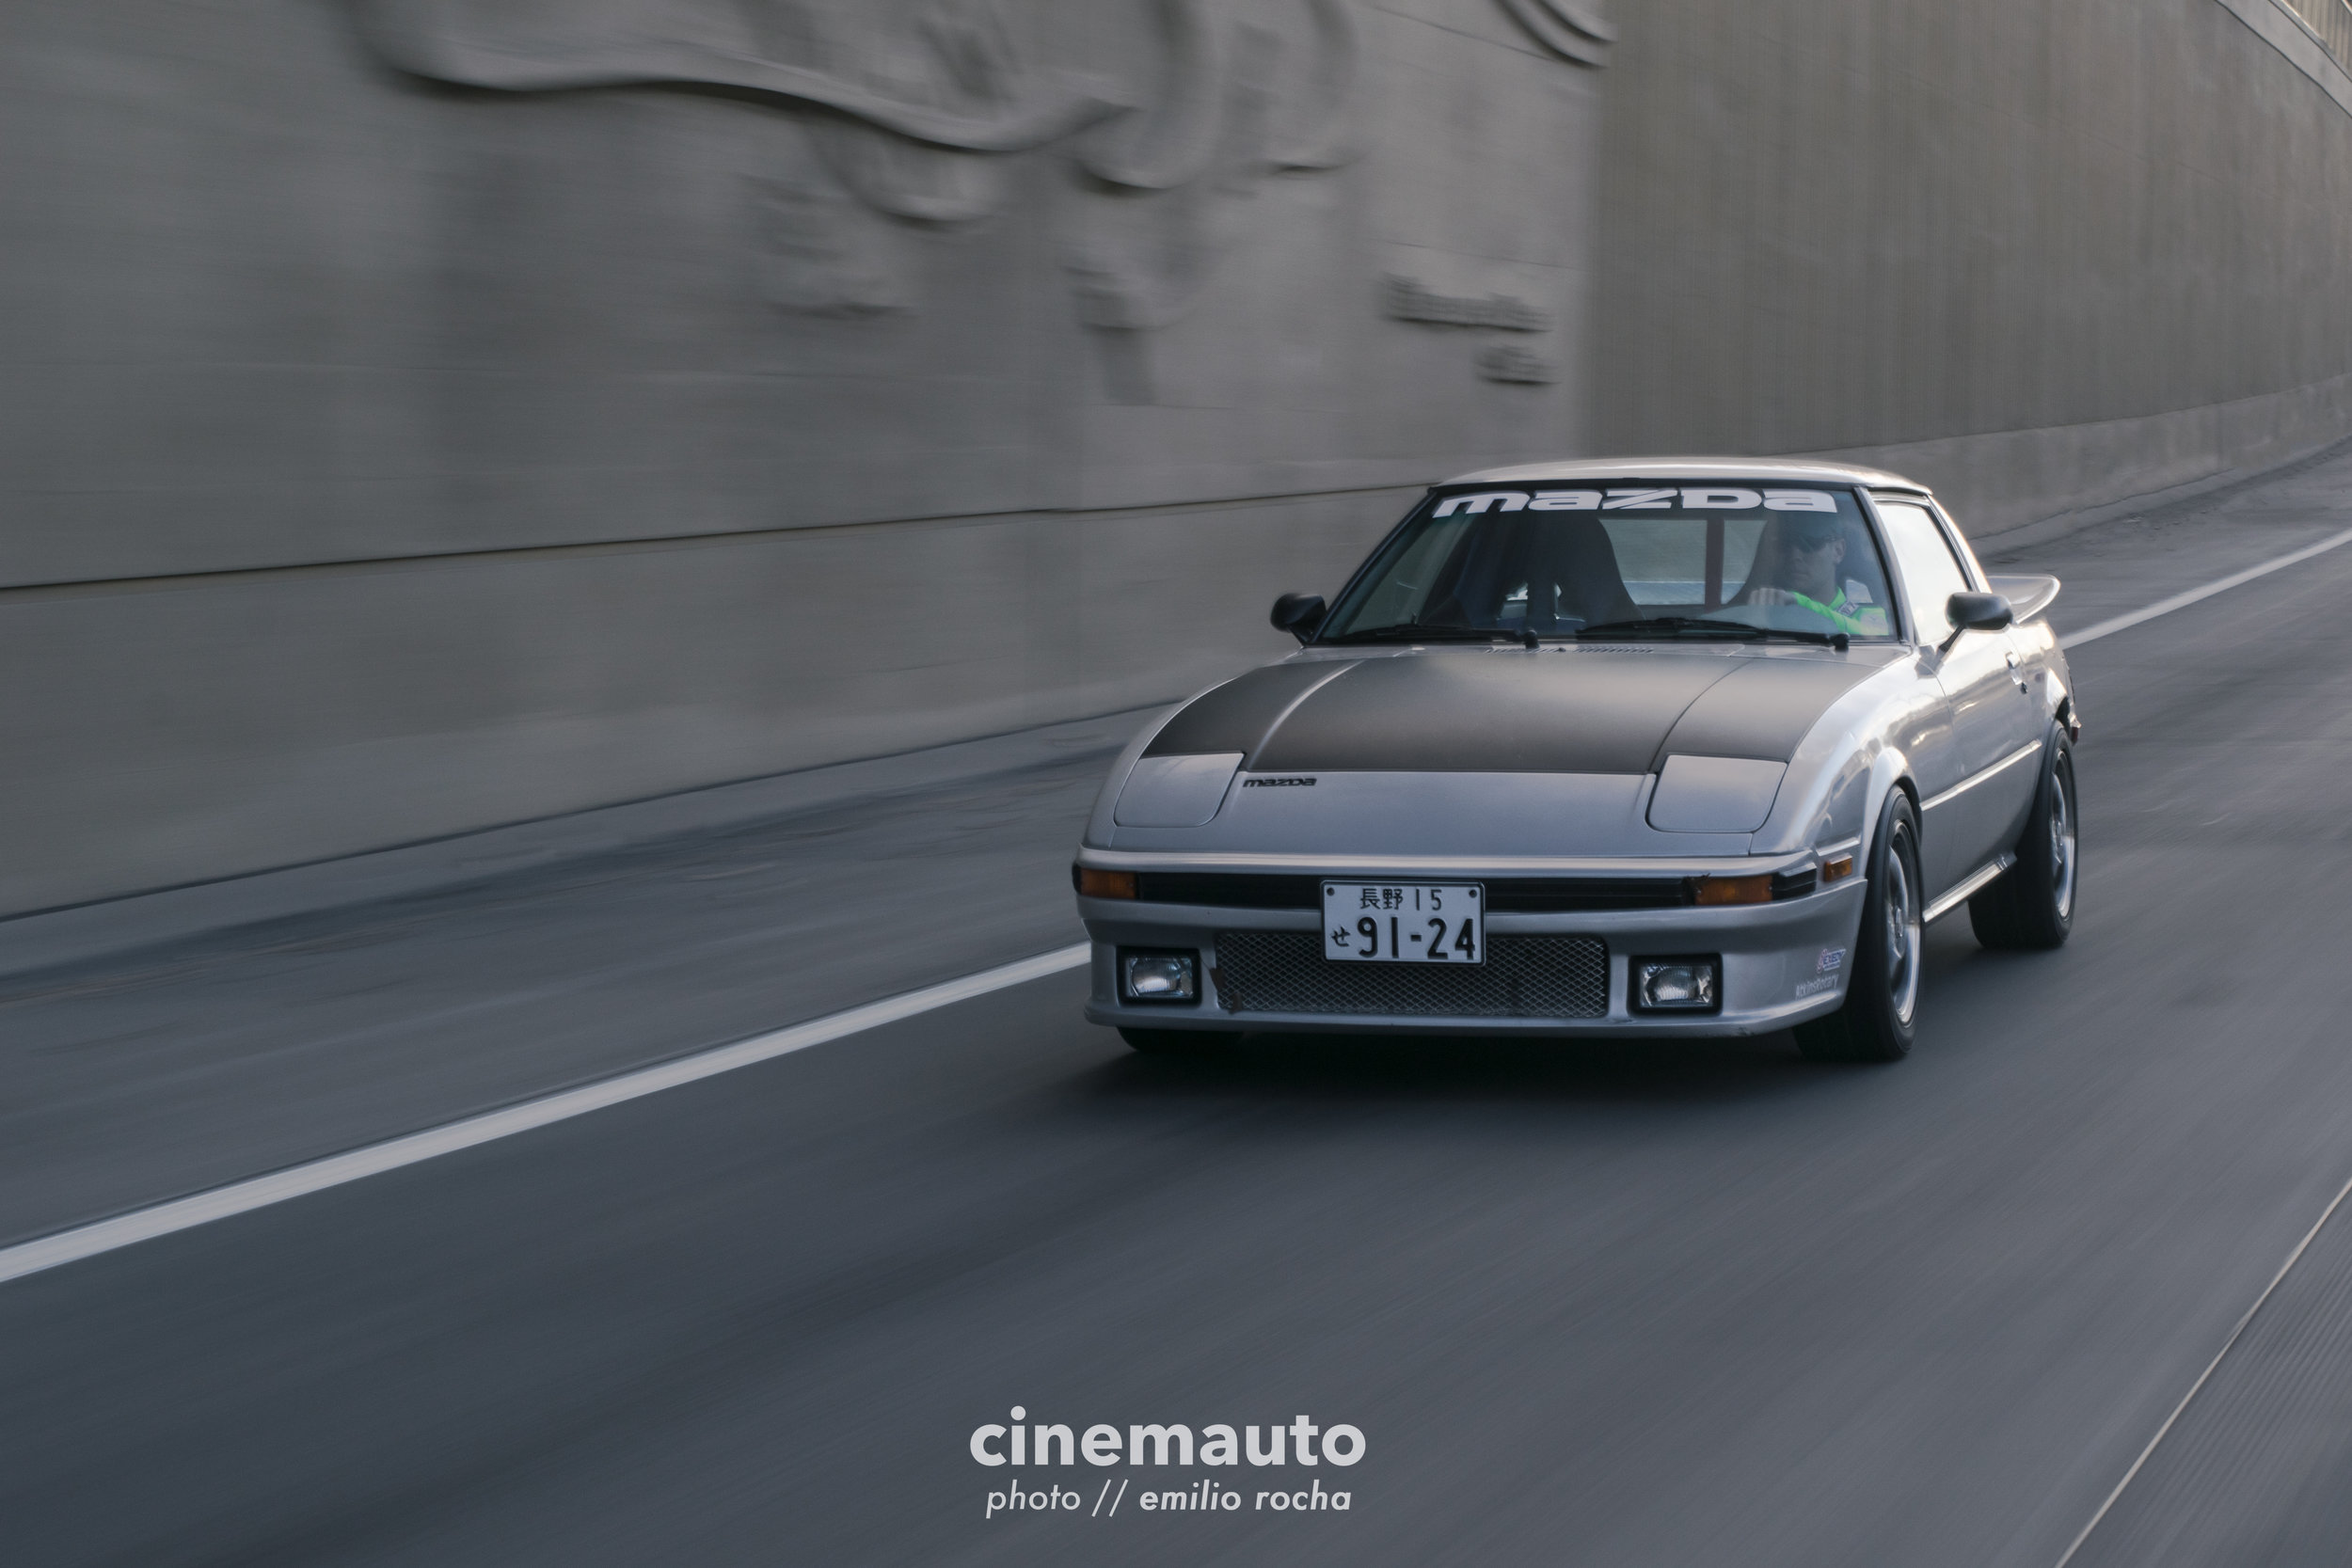 Cinemauto-RX7-8.jpg